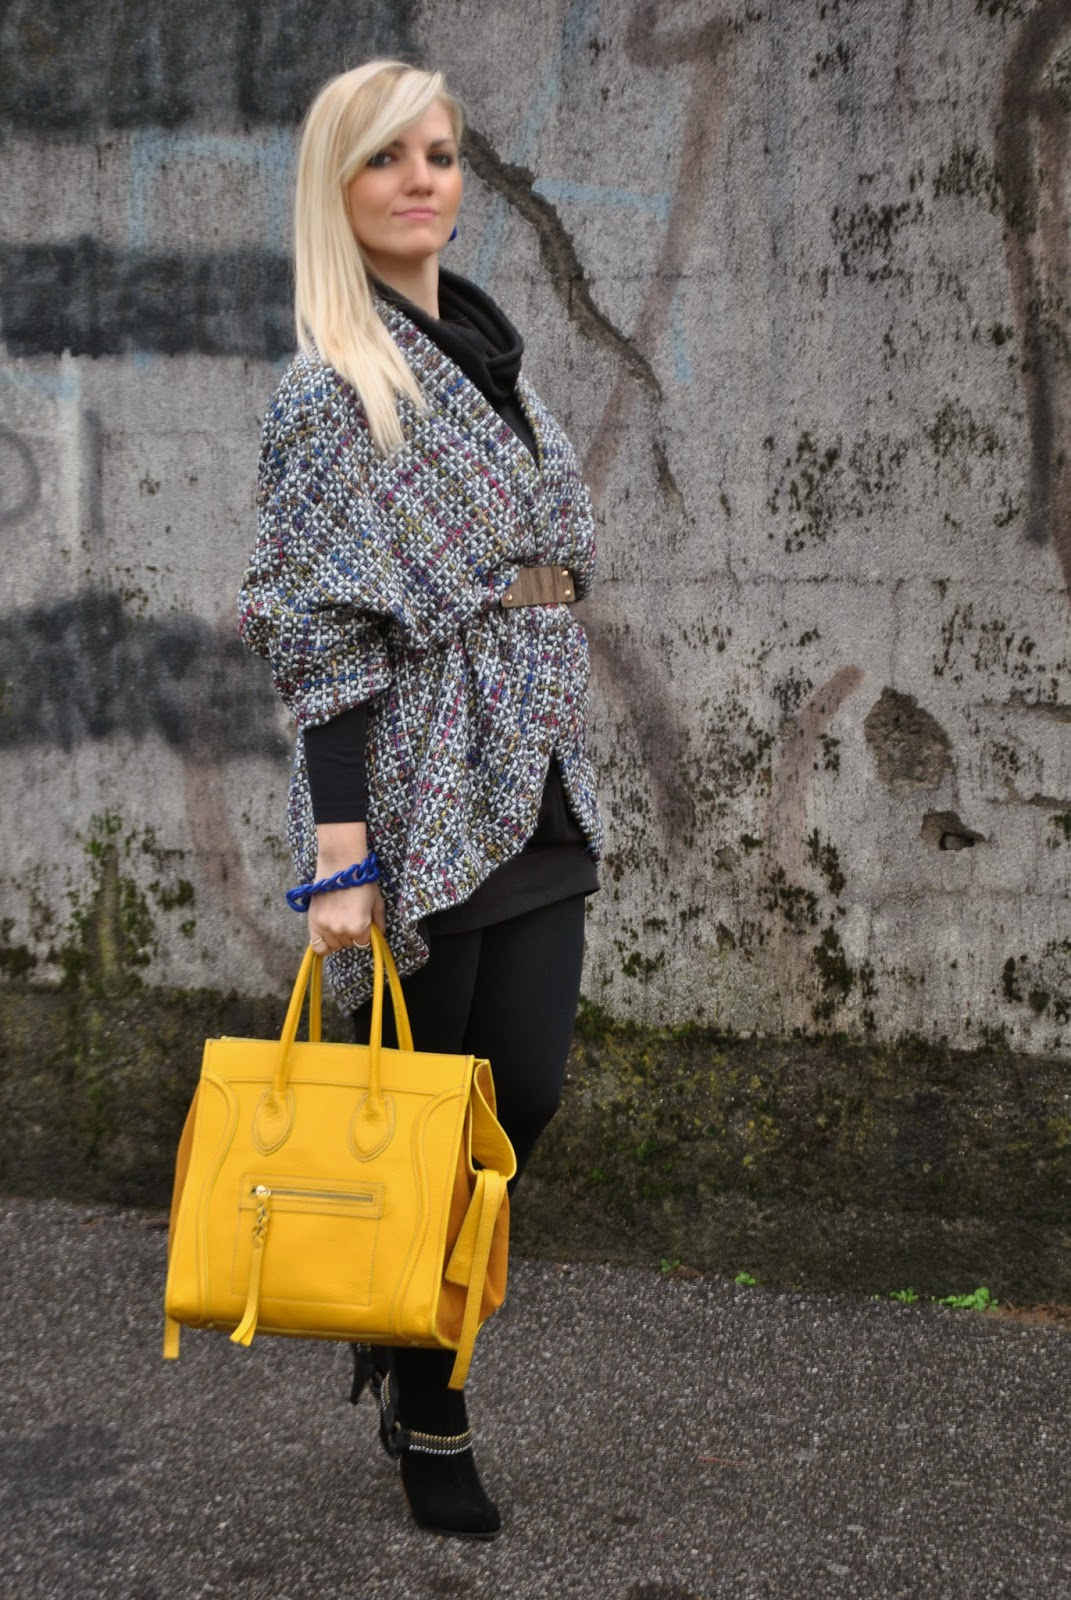 outfit cappotto a uovo borsa celine gialla stivali buffalo buffalo boots celine bag egg shape coat orecchini blu outfit accessori gialli e blu abbinamenti borsa gialla come abbinare la borsa gialla how to wear yellow bag how to wear cape outfit novembre 2014 outfit autunnali autumnal outfits  autumnal outfits  outfit autunnali outfit mariafelicia magno mariafelicia magno fashion blogger italian girls ragazze italiane fahsion blogger bionde ragazze bionde blonde girls fashion bloggers italy